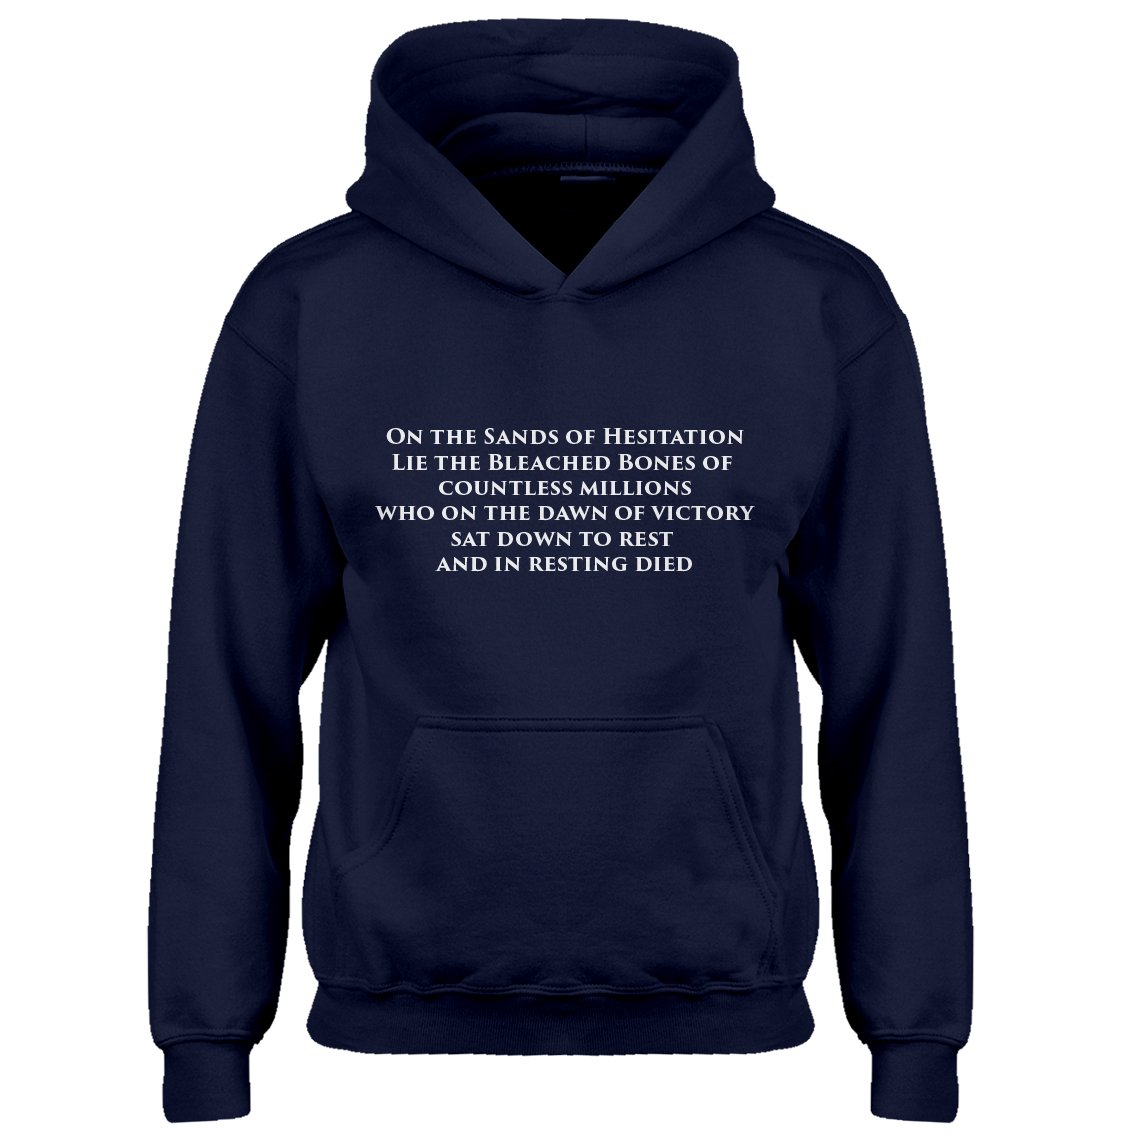 Indica Plateau Kids Hoodie On The Sands of Hesitation Small Navy Blue Hoodie